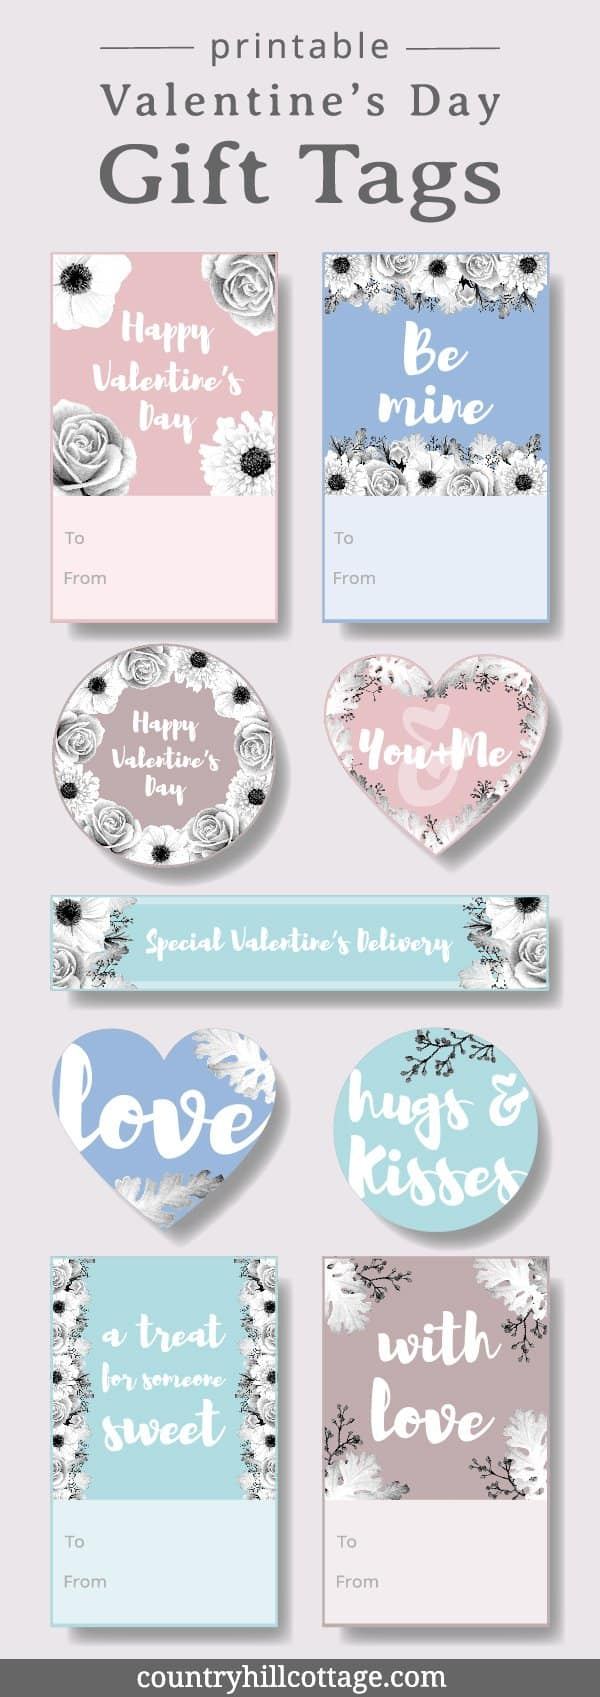 Printable Valentine's Day gift tags are perfect to decorate gifts for your friends and loved ones. Our printable gift tags are an easy DIY project. All you need to do is print, cut, package and your good to go. The tags are also great for birthdays, Mother's Day, wedding anniversaries, or to label shower gifts. Use the set as stickers, labels and template for scrap booking, planners, diaries, and to write sweet notes. #printable #gifttag #ValentinesDay #freebie | countryhillcottage.com